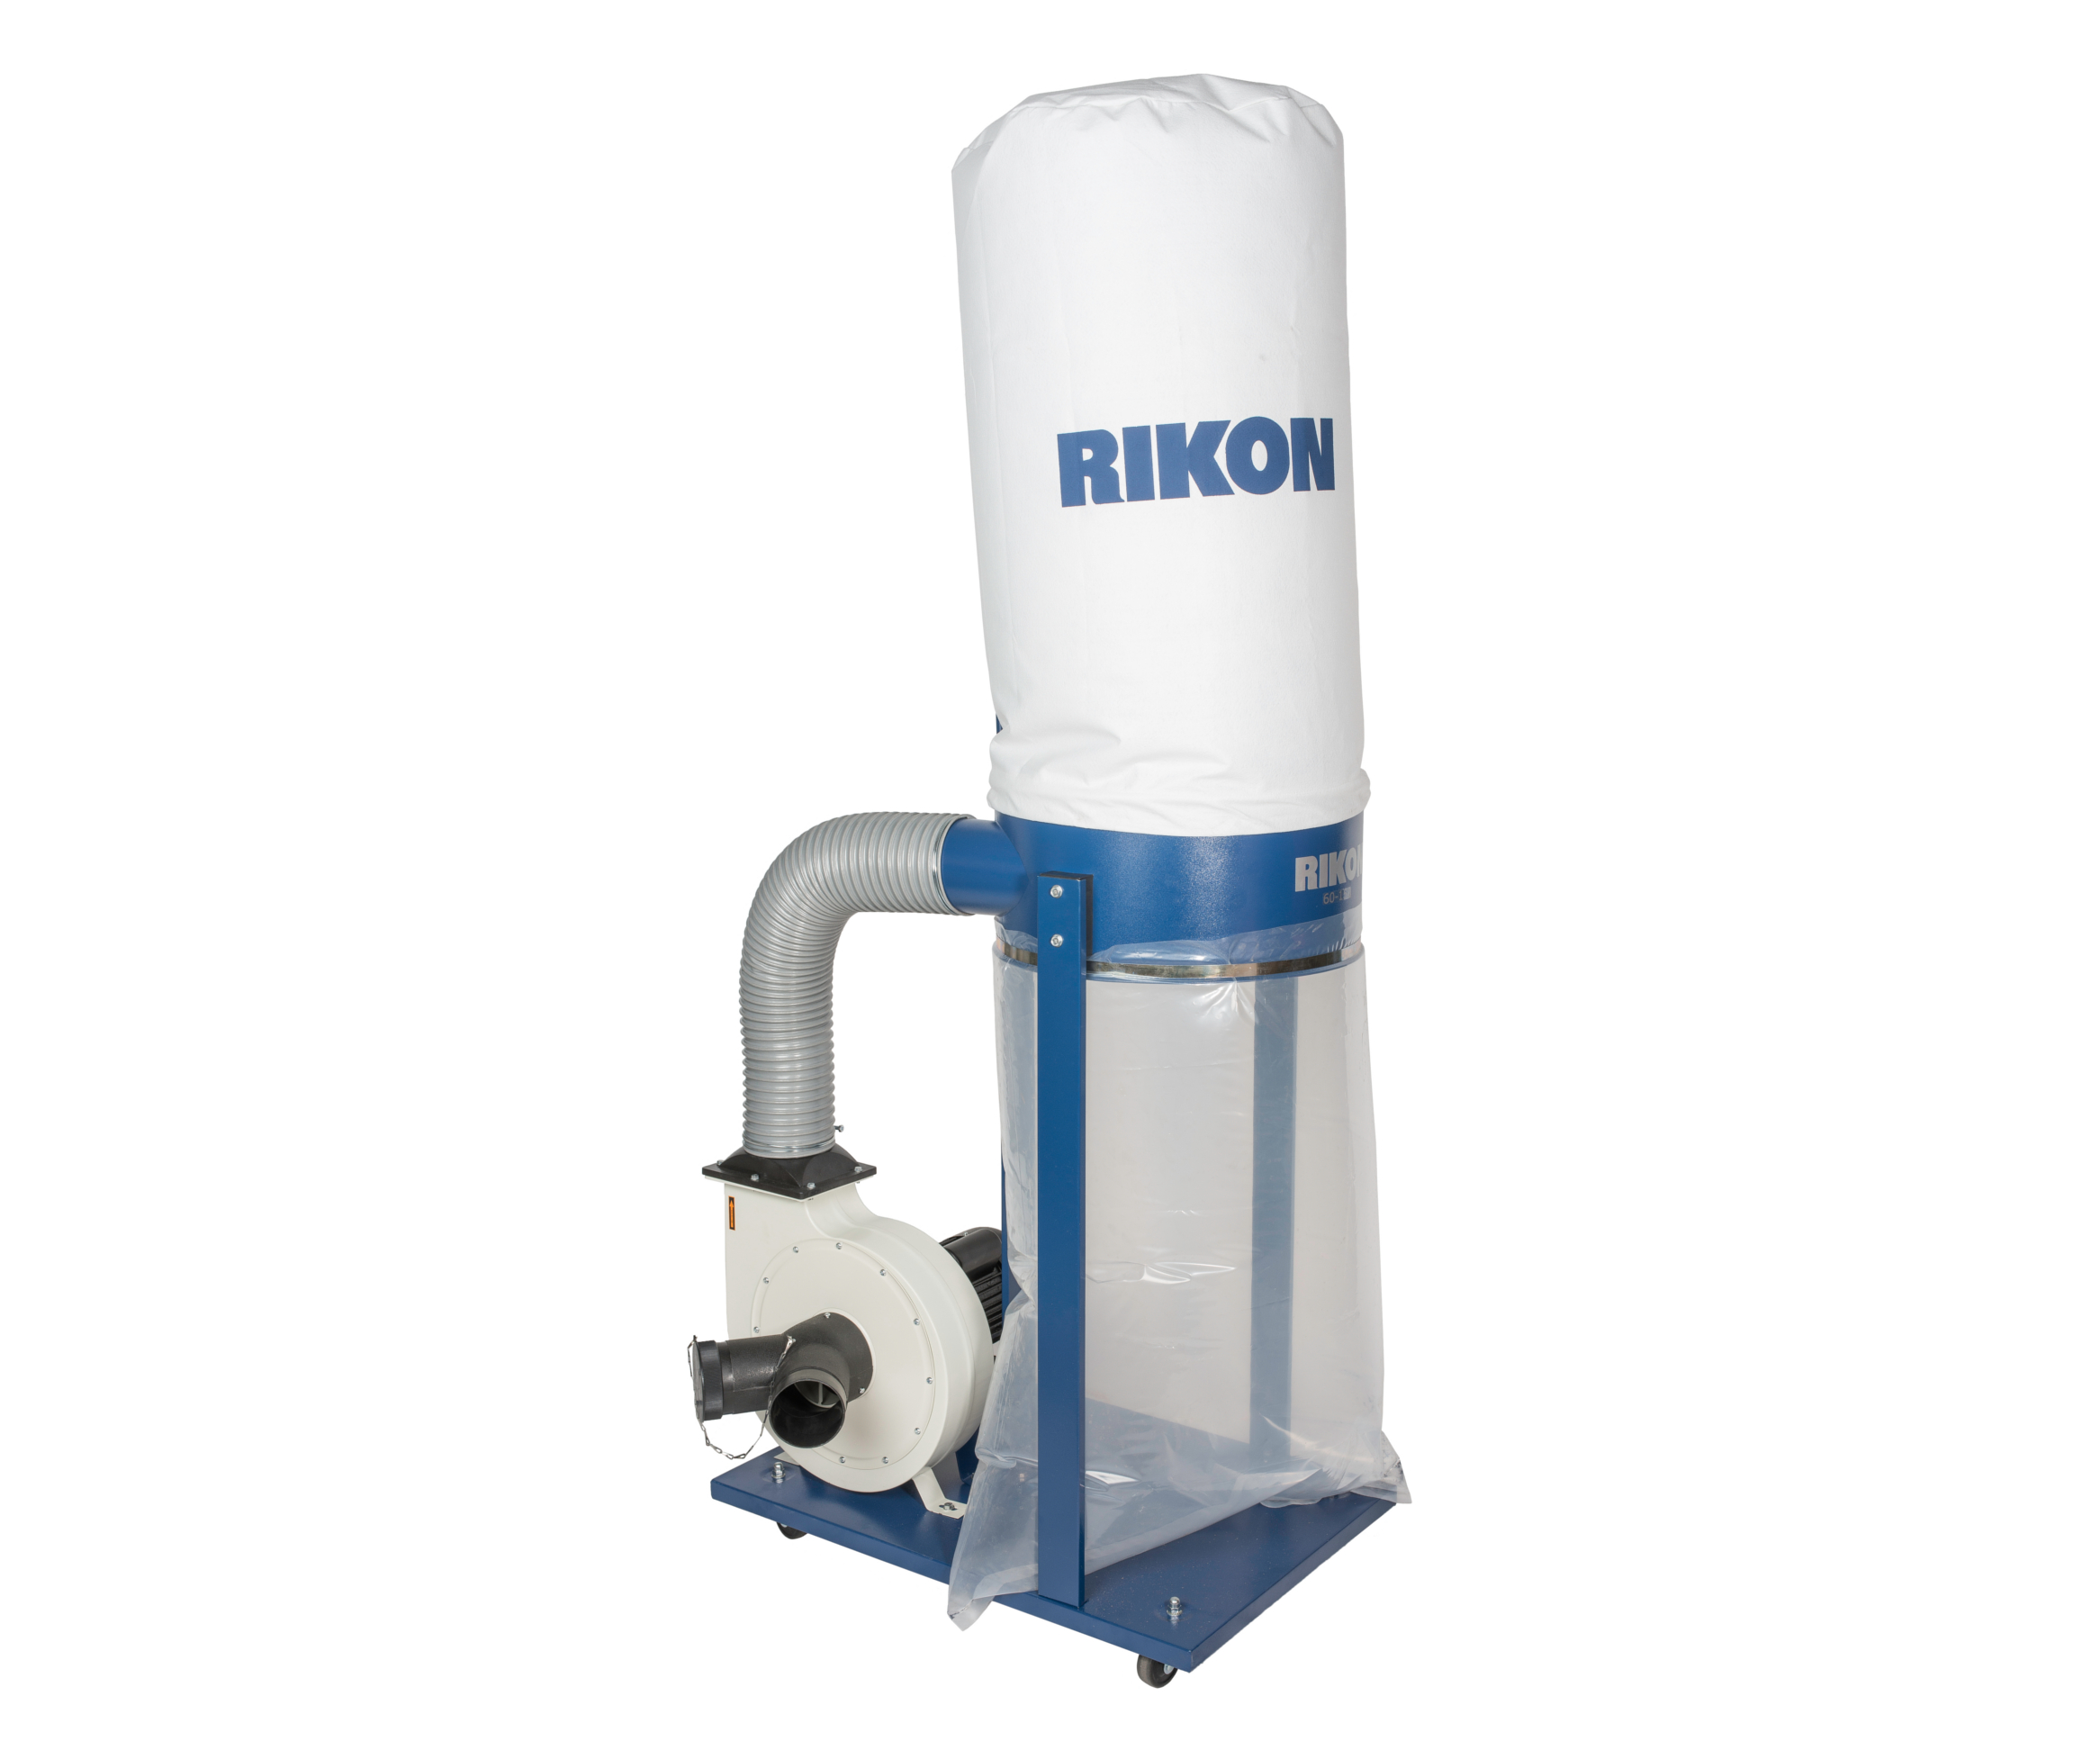 Rikon Dust Collector 60 200